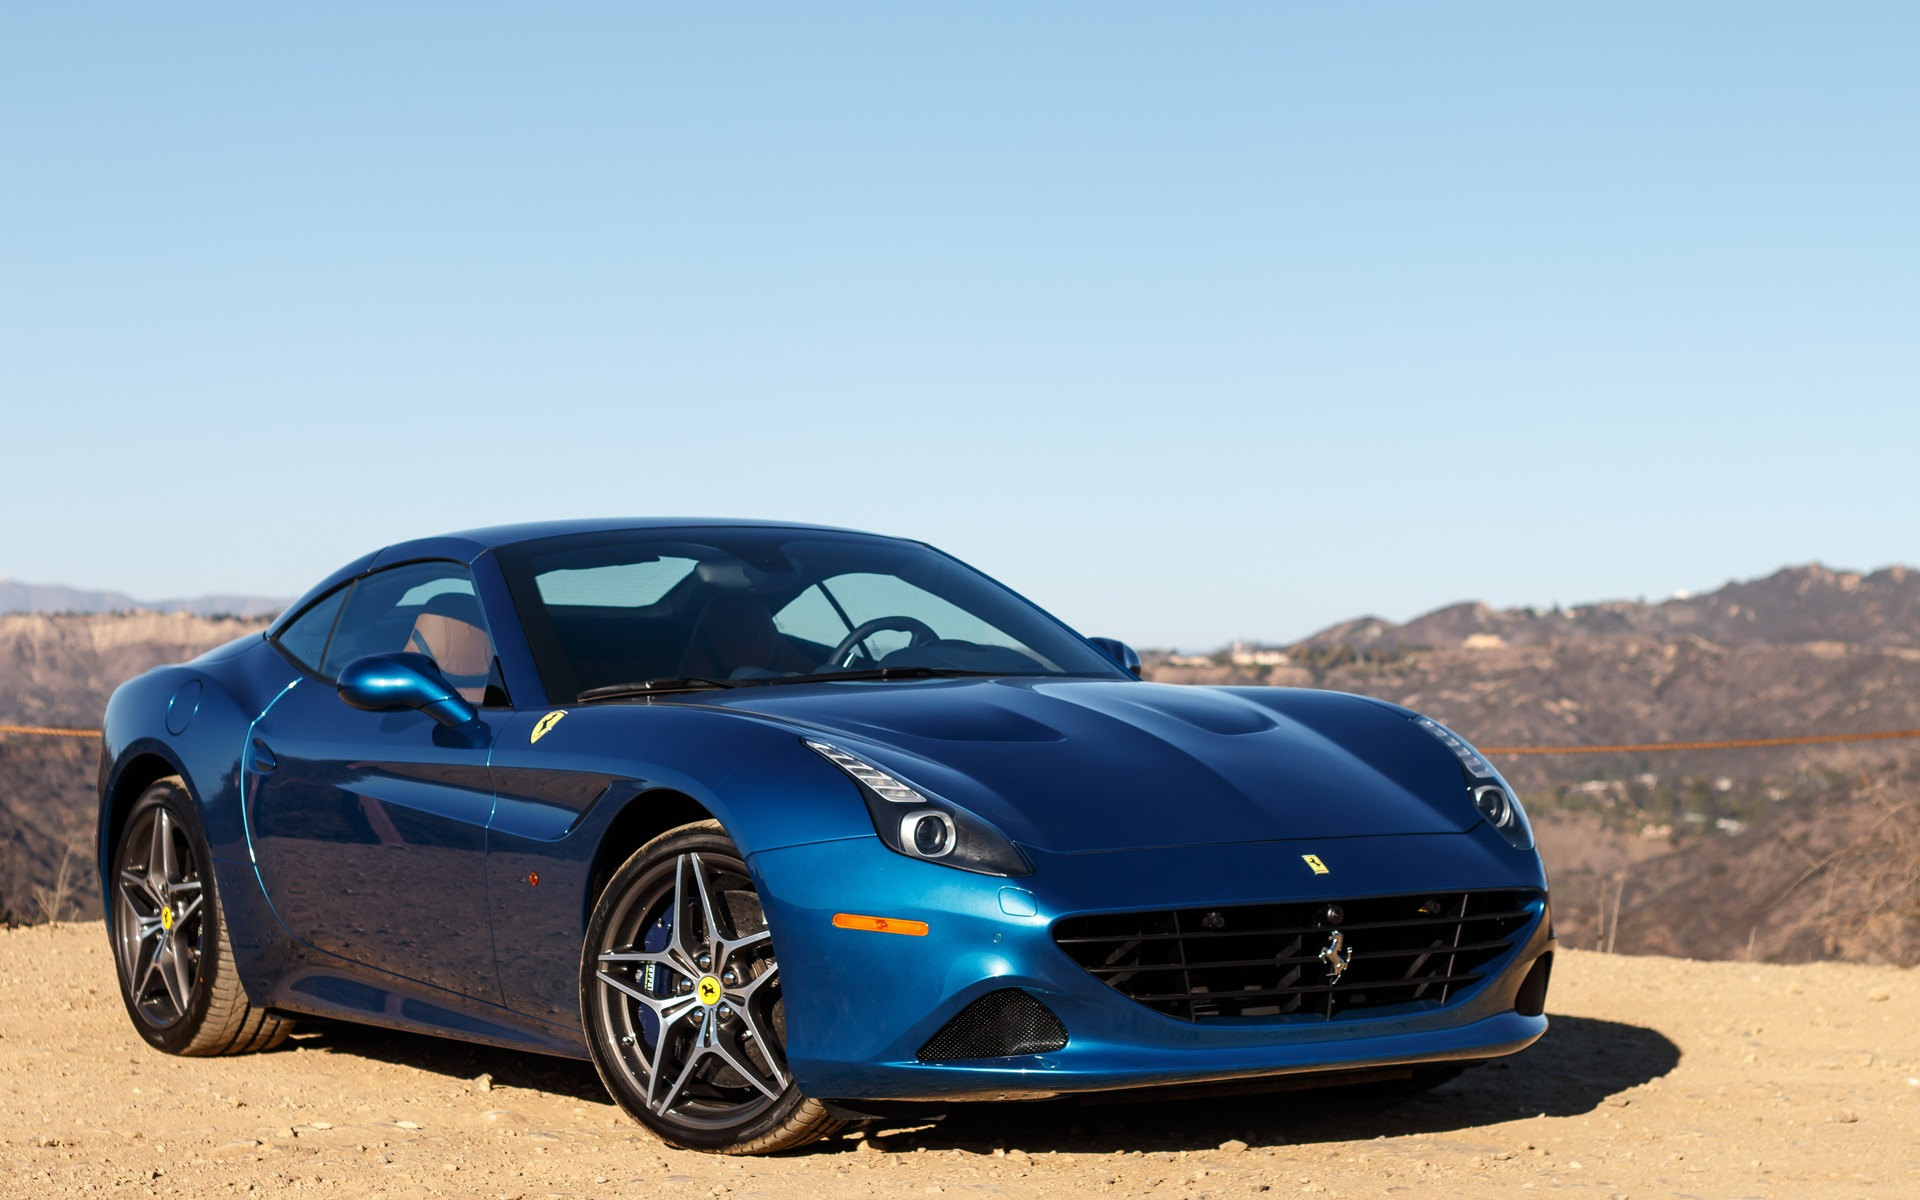 2017 ferrari california news reviews picture galleries and 2017 ferrari california news reviews picture galleries and videos the car guide voltagebd Gallery